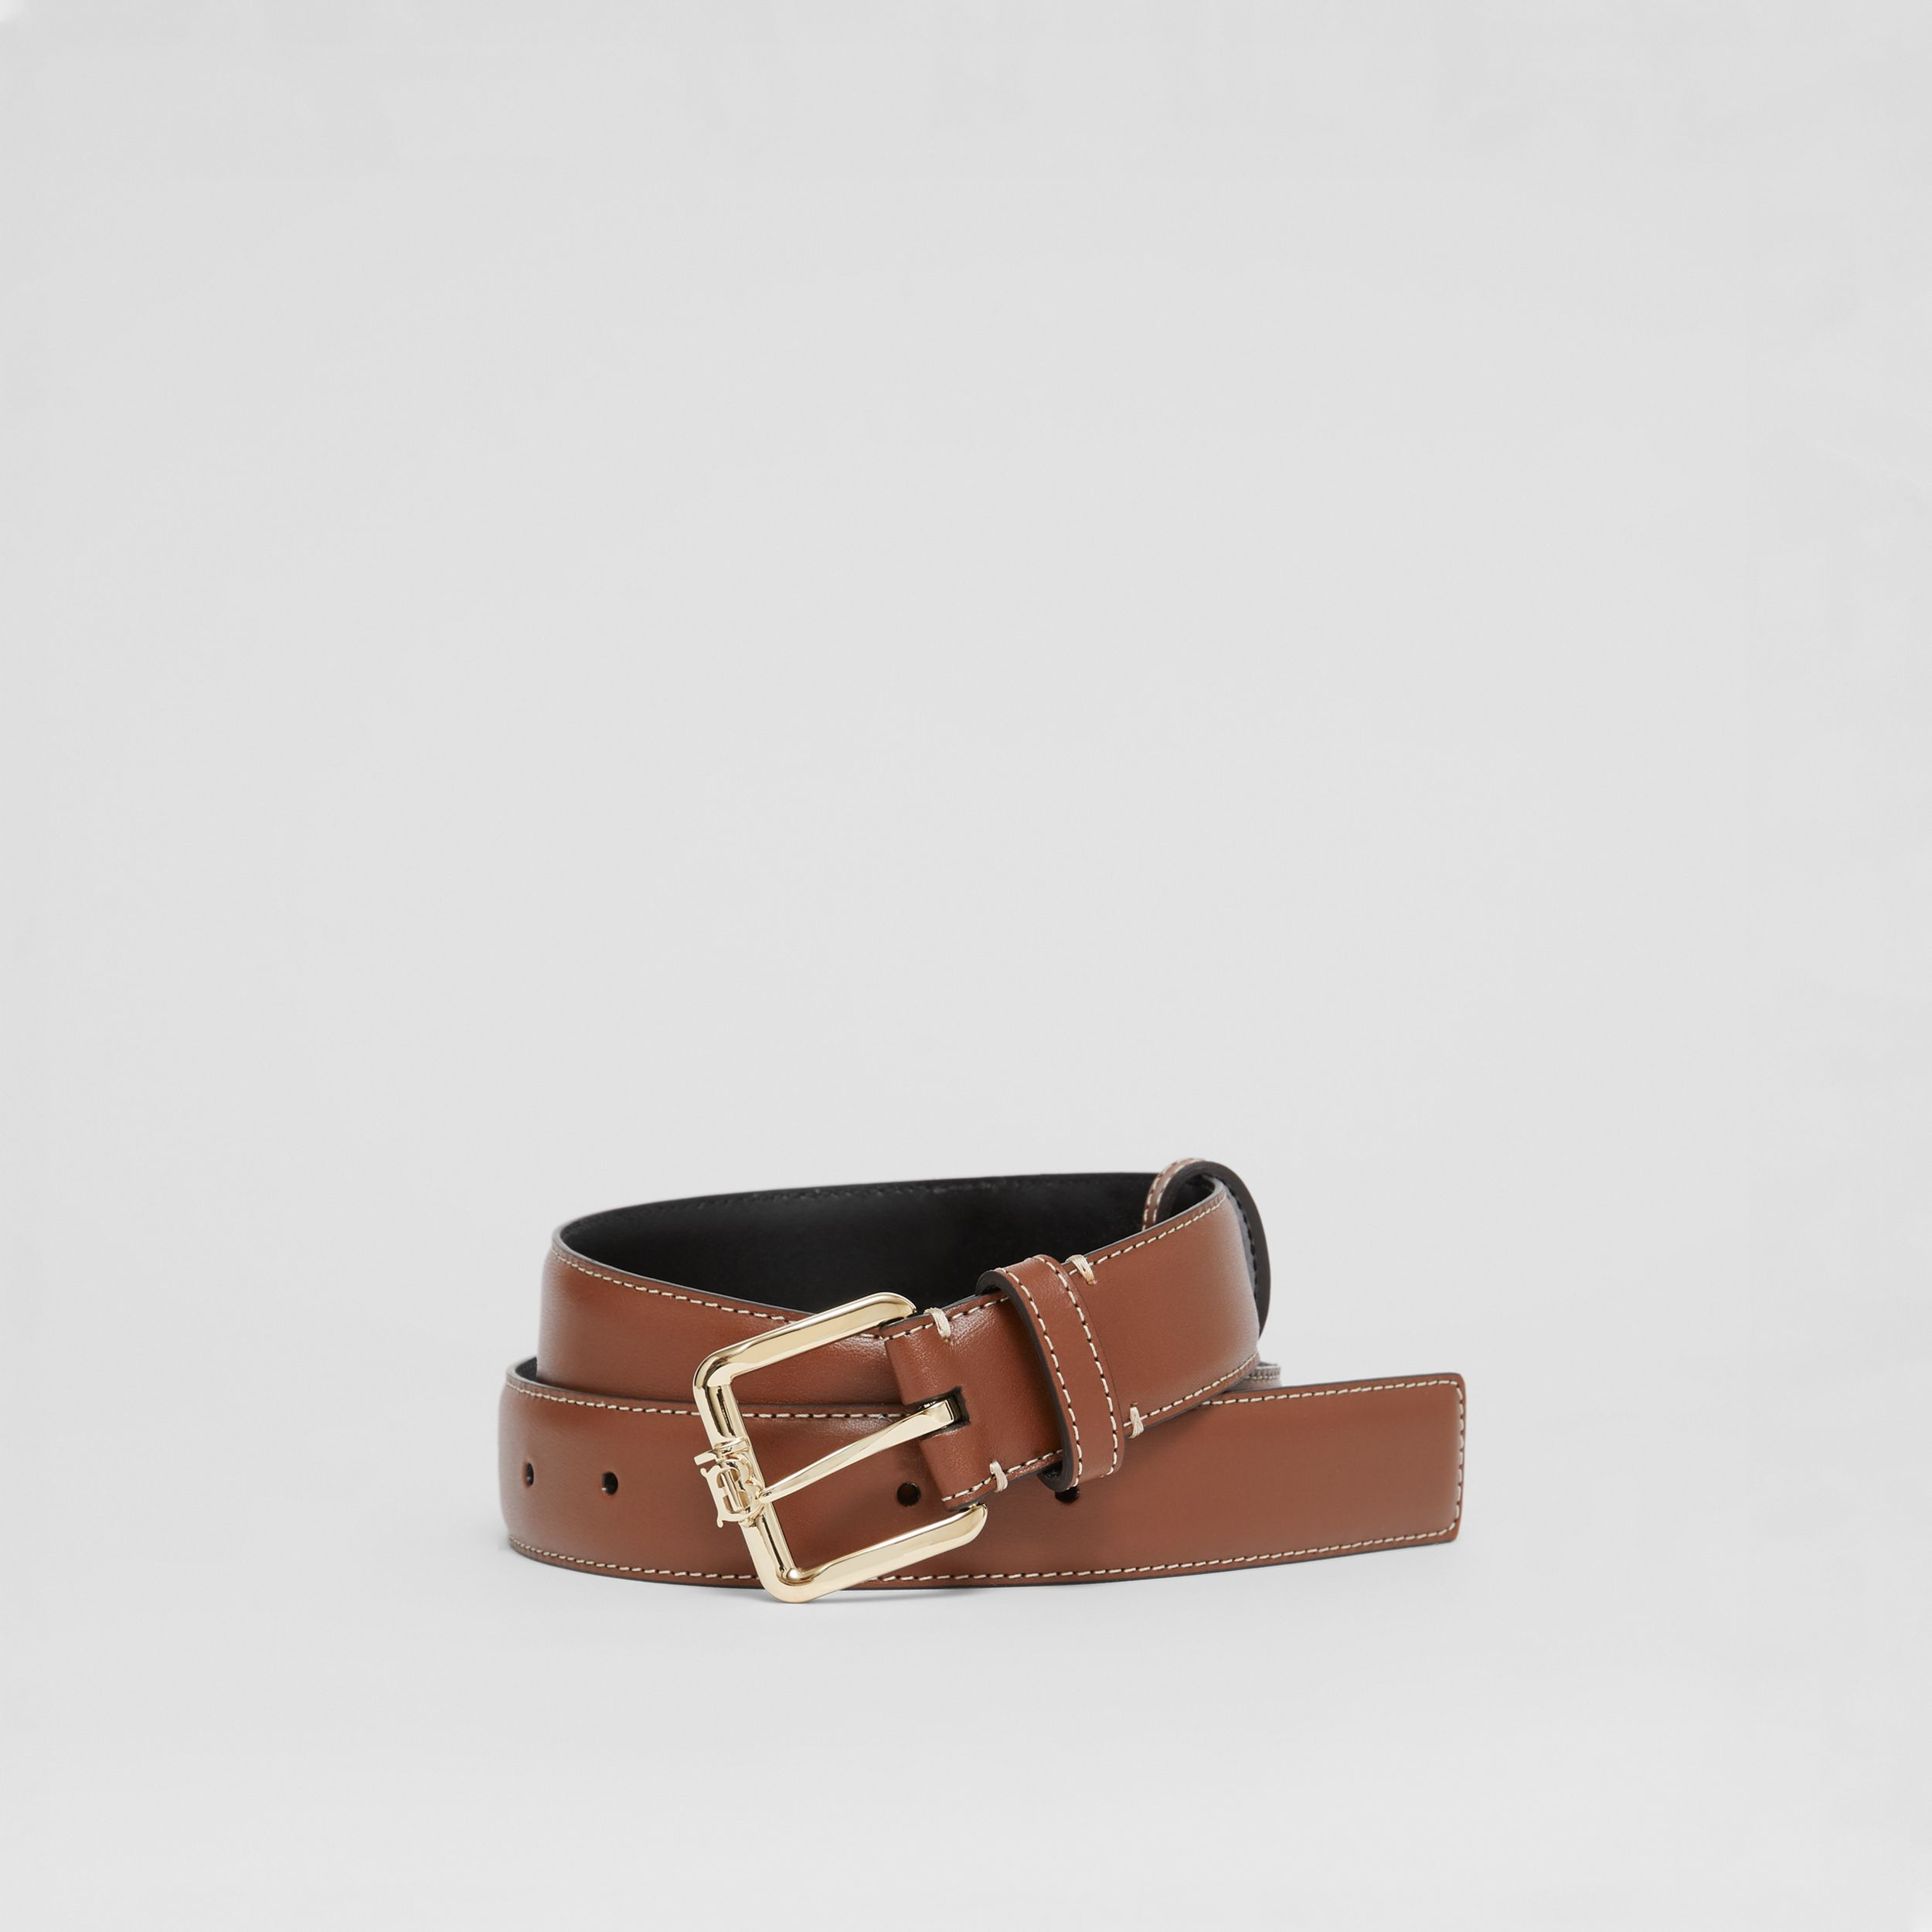 Monogram Motif Topstitched Leather Belt in Tan/light Gold - Women | Burberry United Kingdom - 1